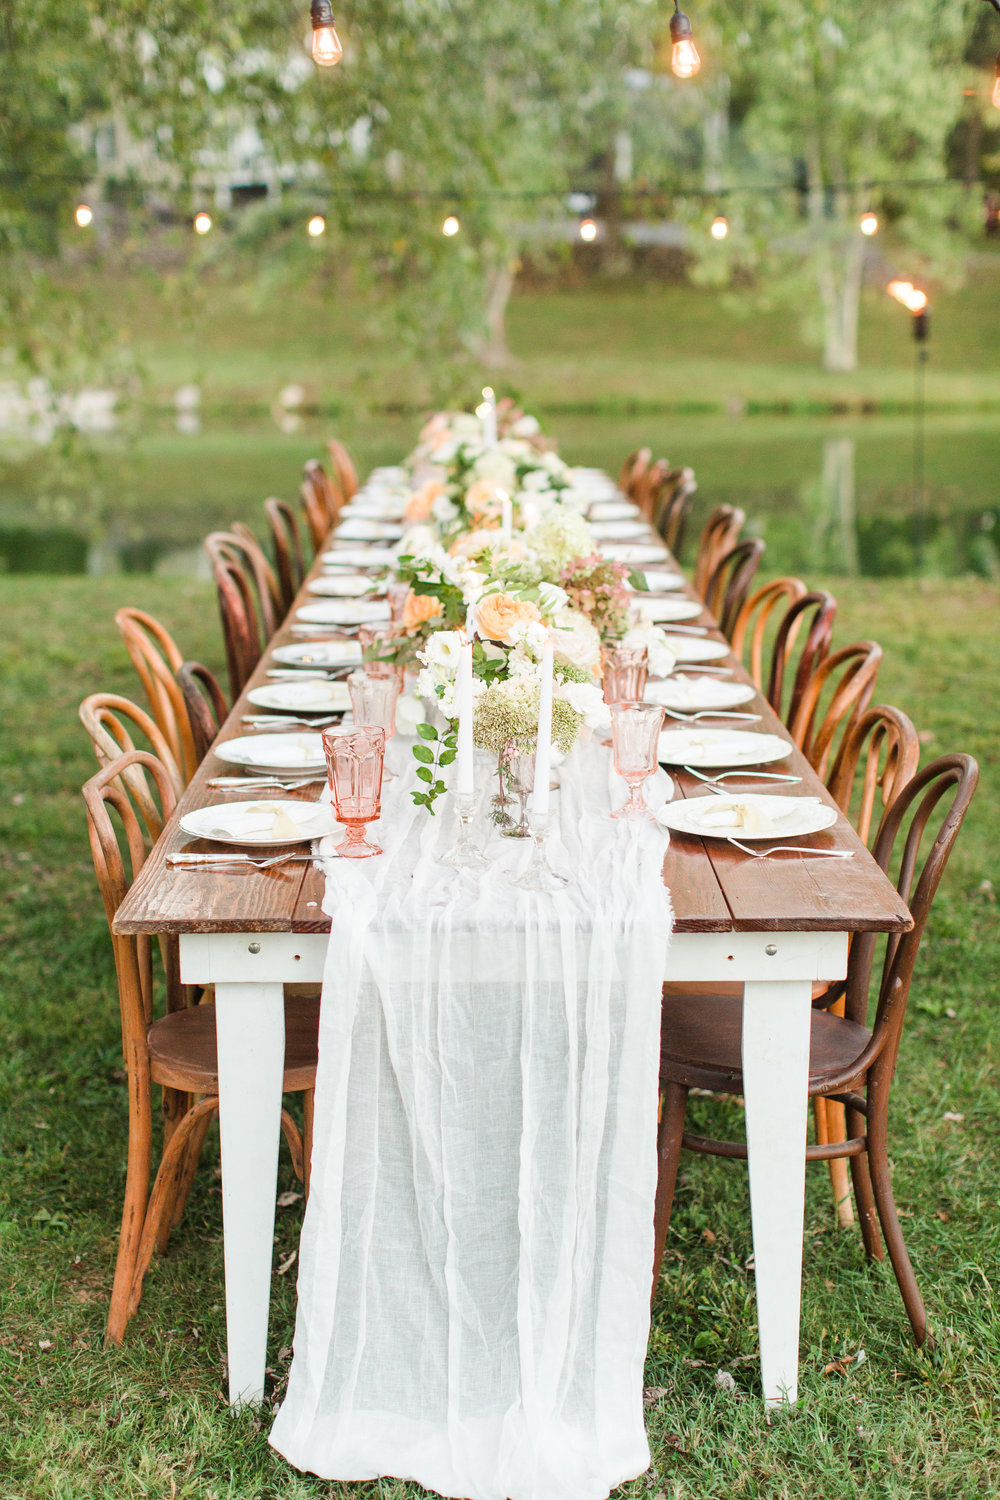 wood table setting outdoors with twinkley lights